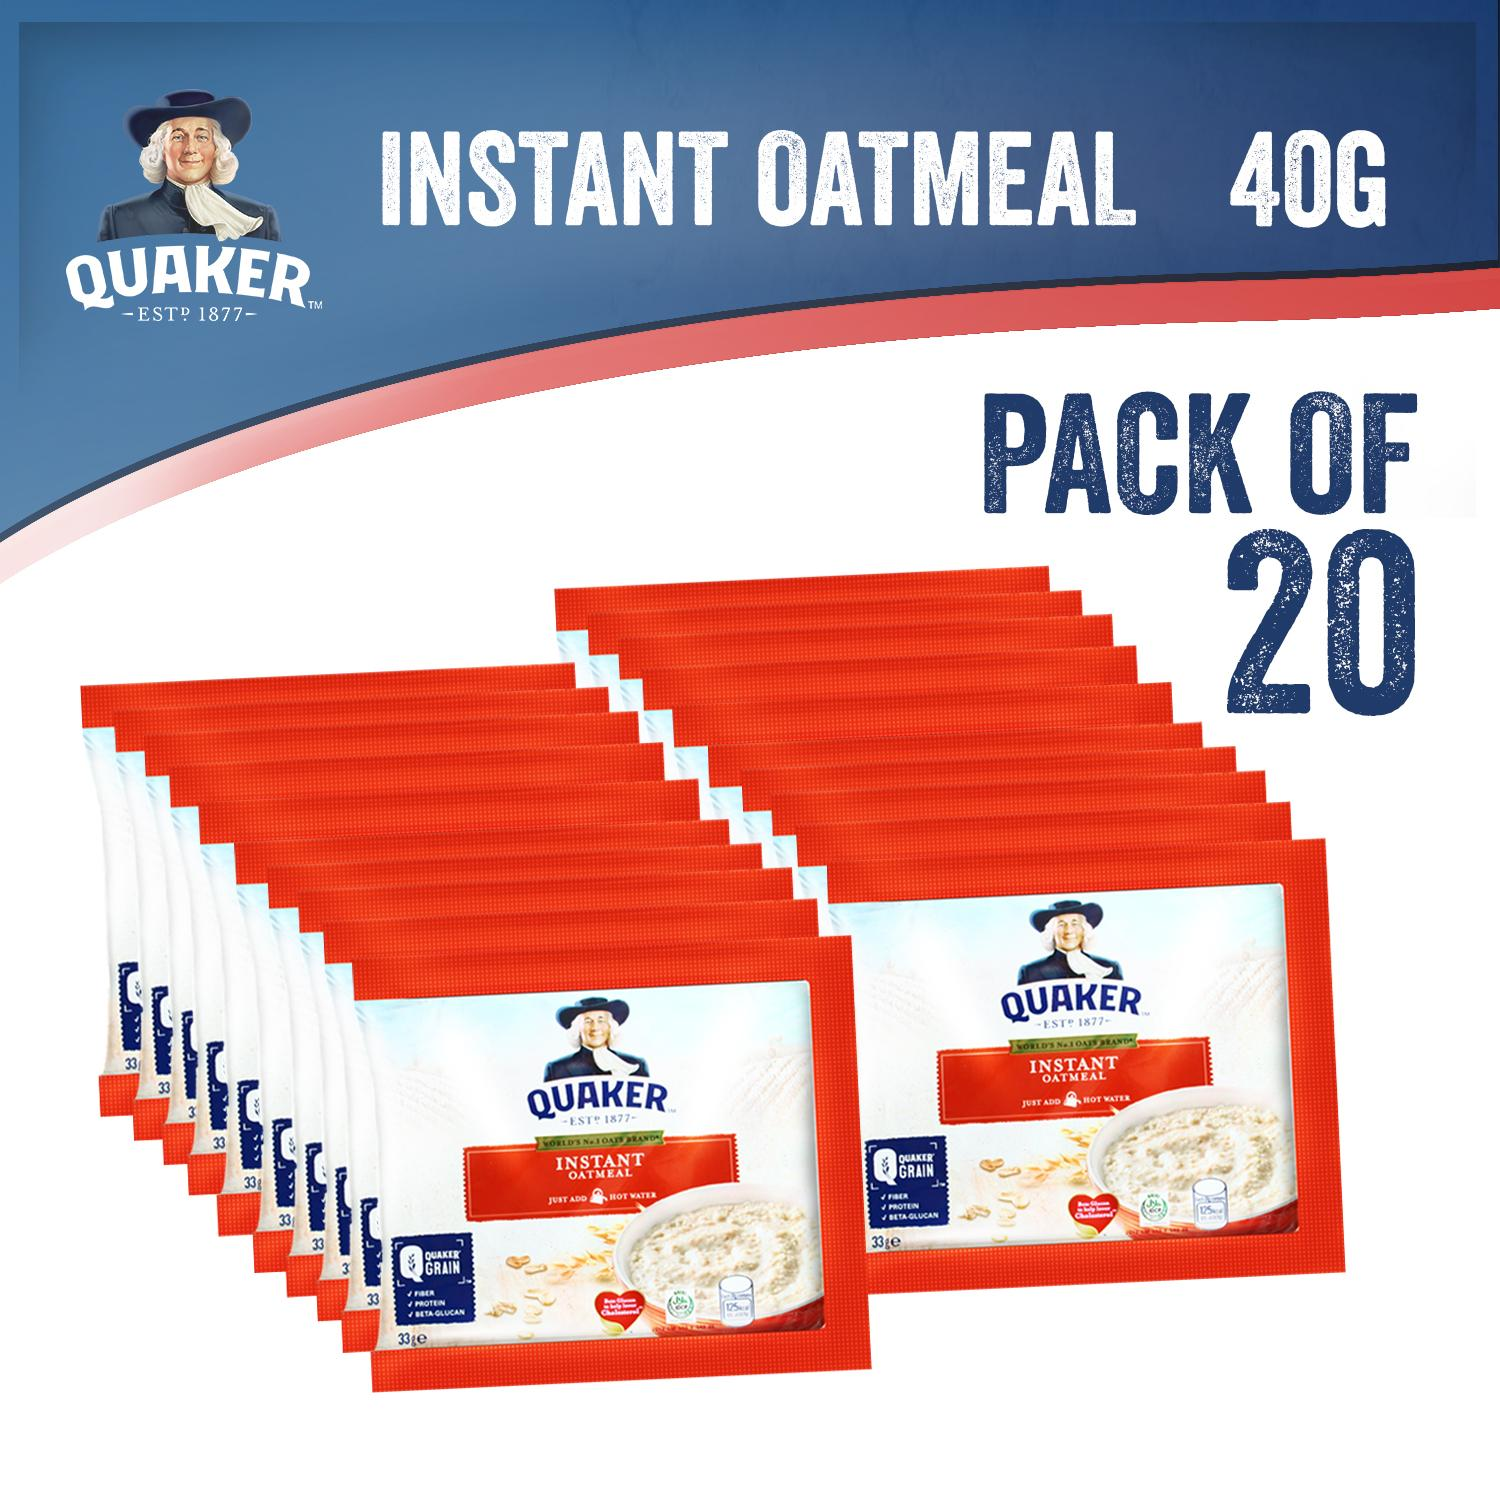 Quaker Instant Oatmeal Original Pack Of 20 (33g) By Quaker.